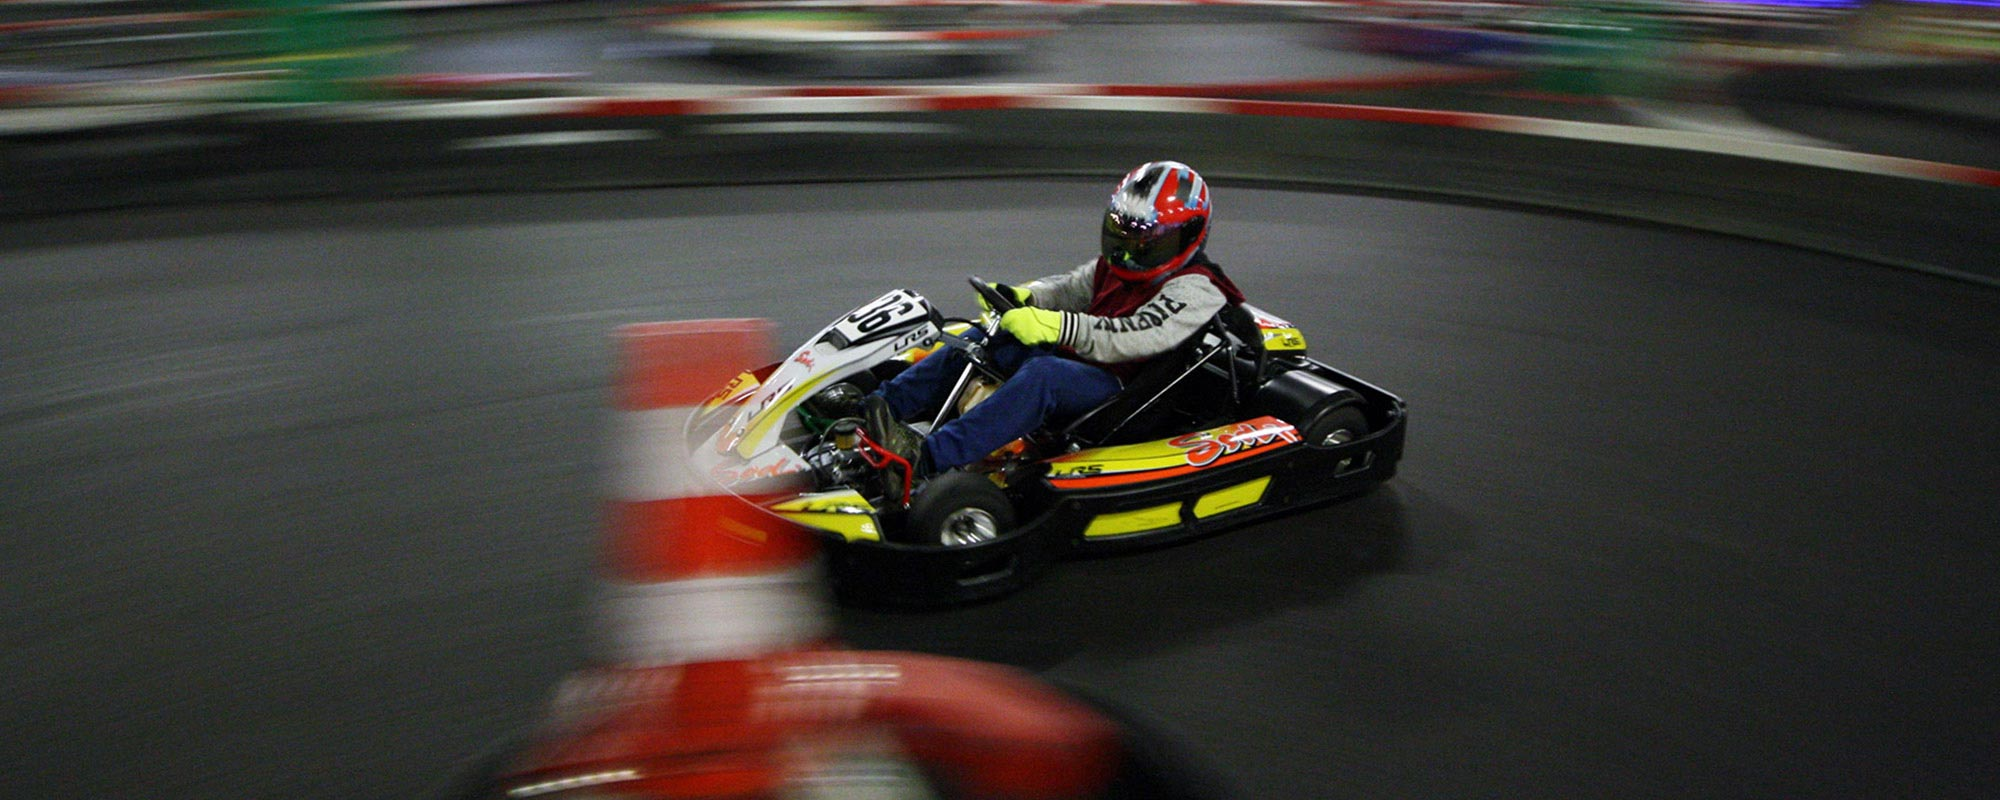 ebafkc-juniorkarting-2000x800-12